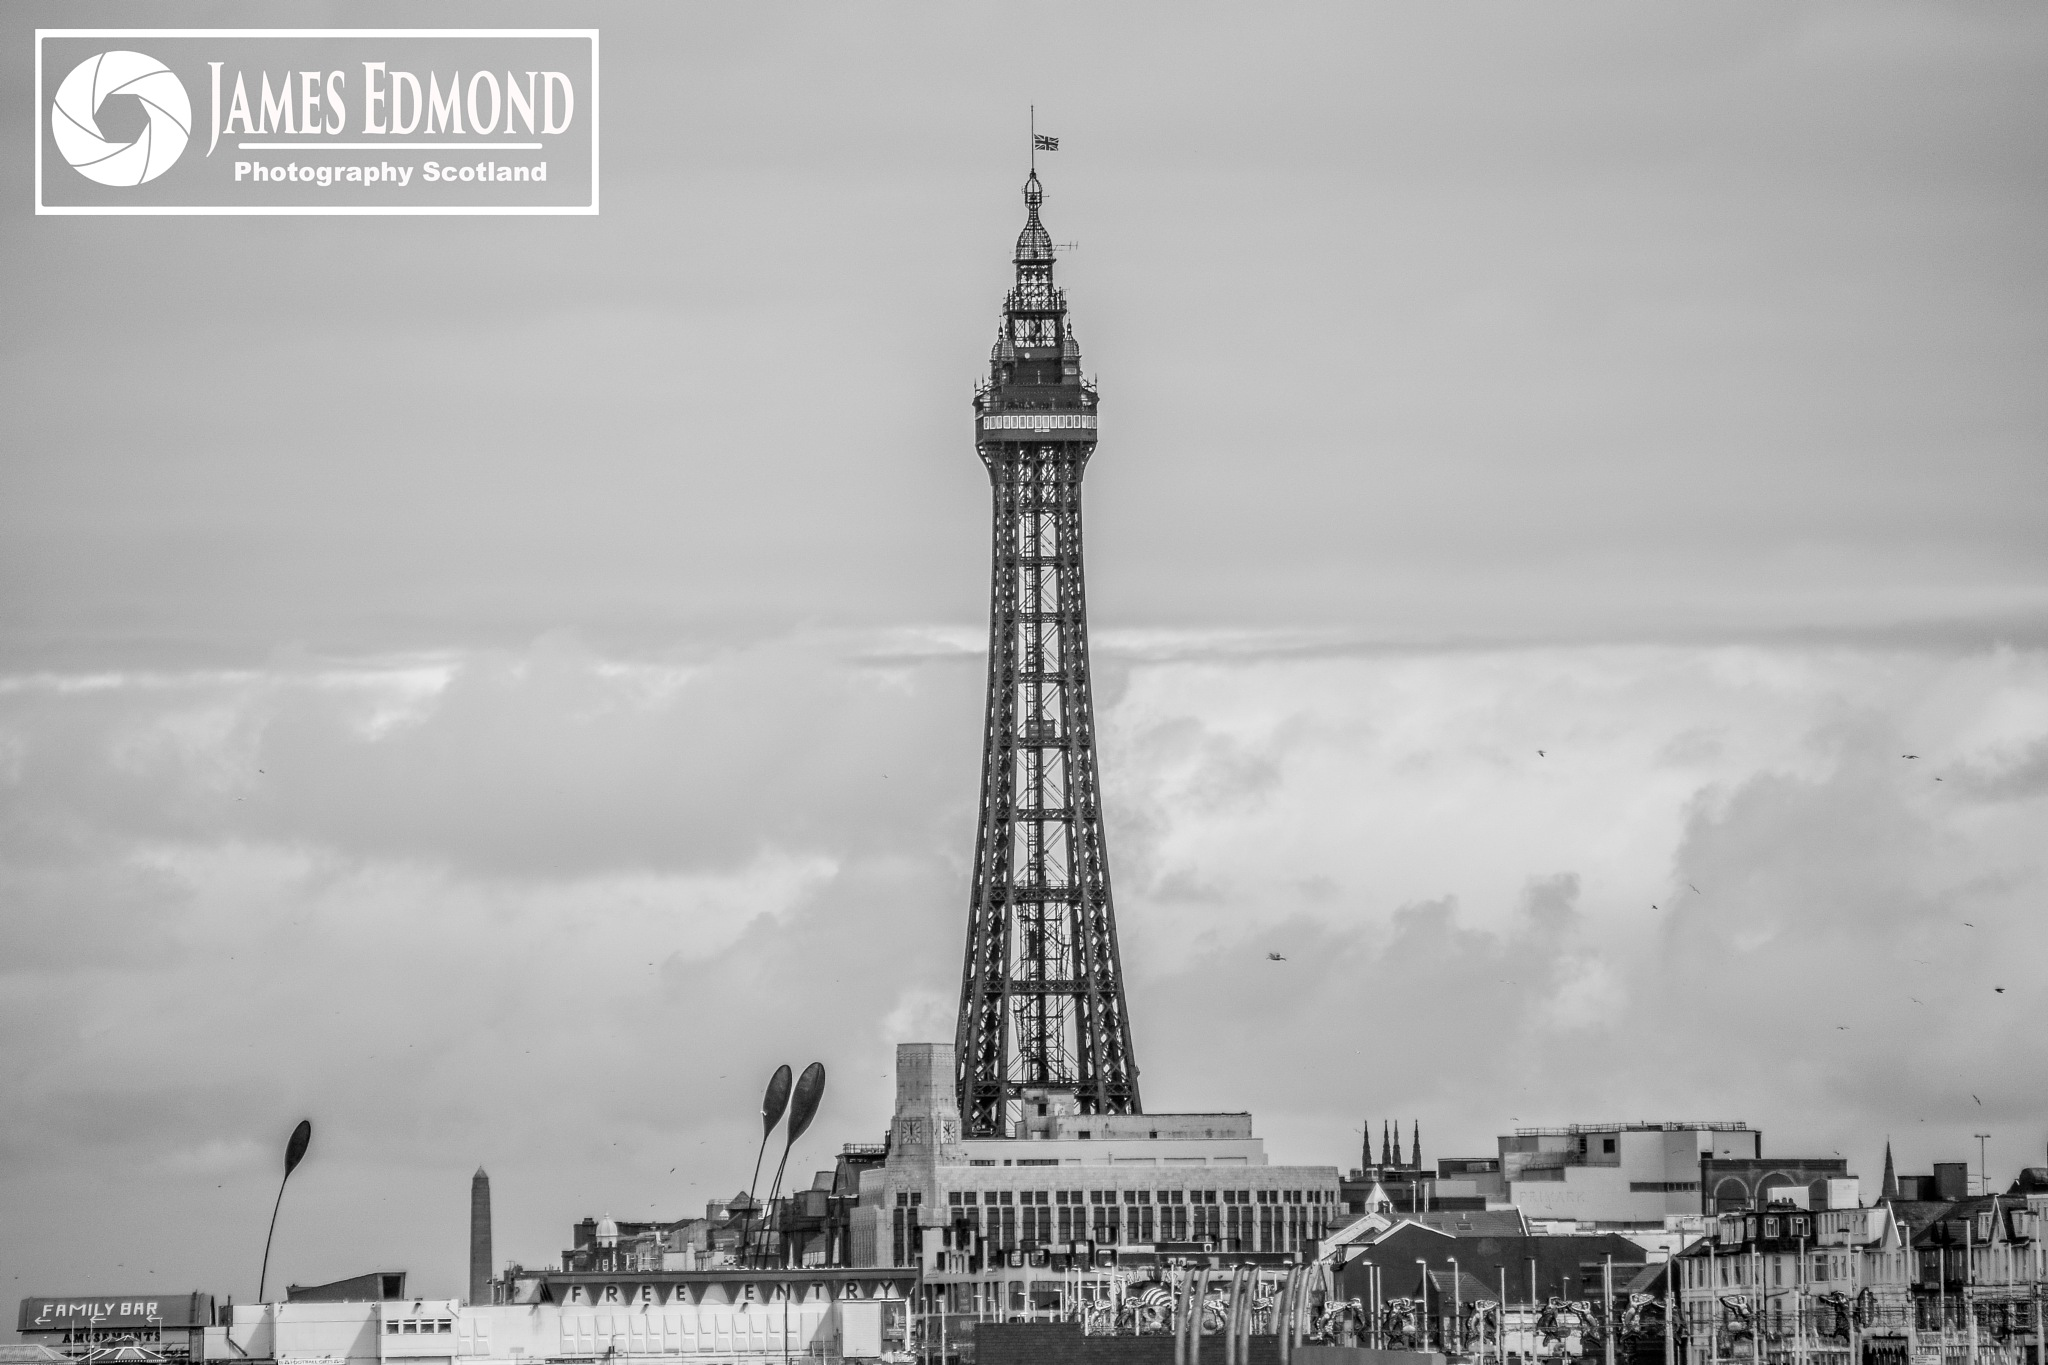 Blackpool in Monochrome by James Edmond Photography